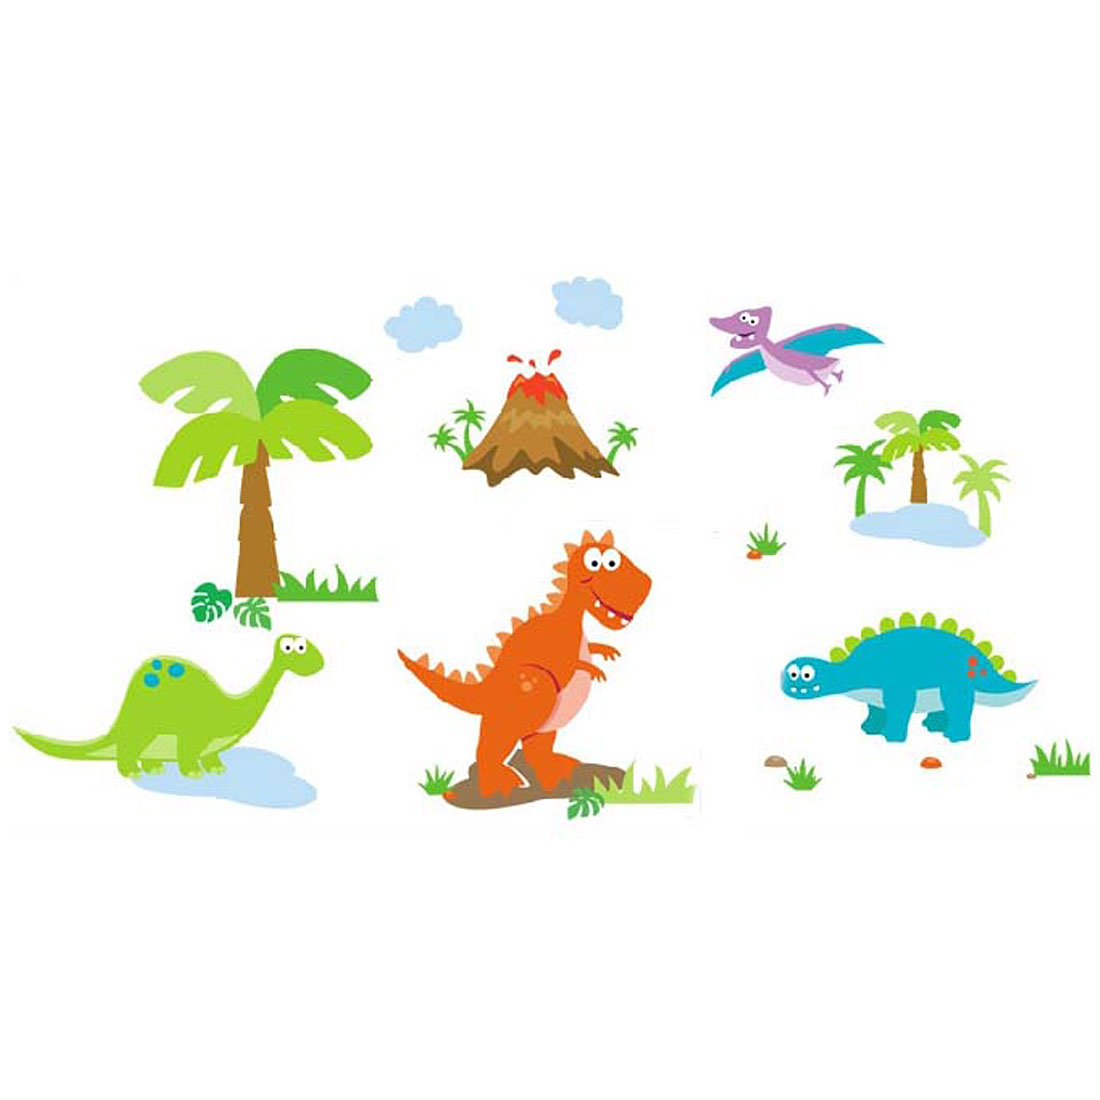 Nursery School Bedroom Dinosaurs Print Removable Wall Sticker Wallpaper Mural